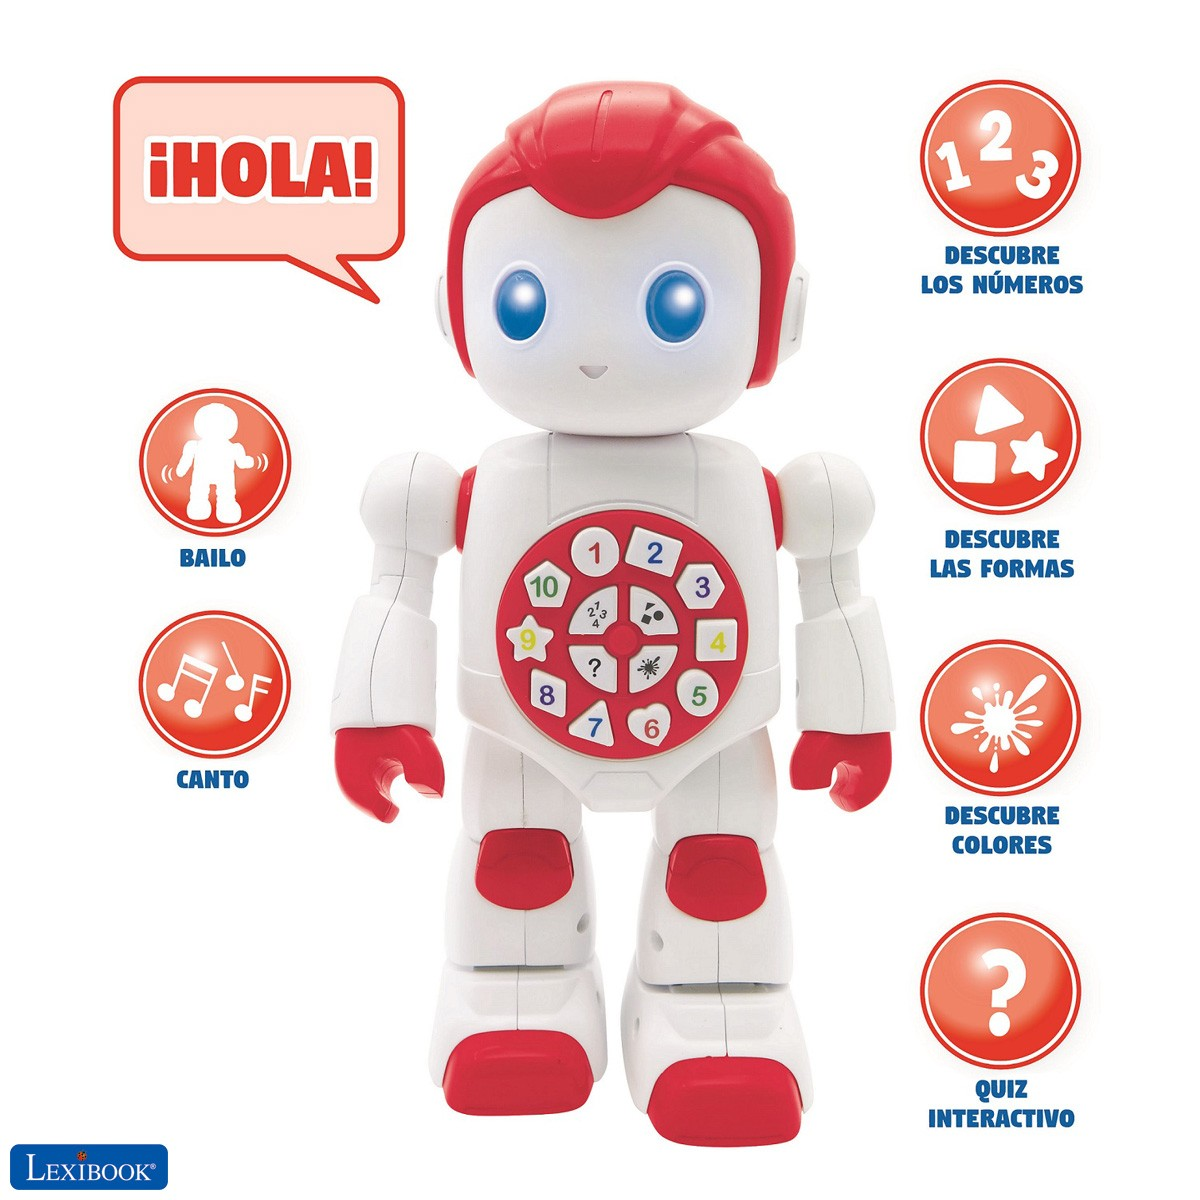 Powerman Baby Smart Robot